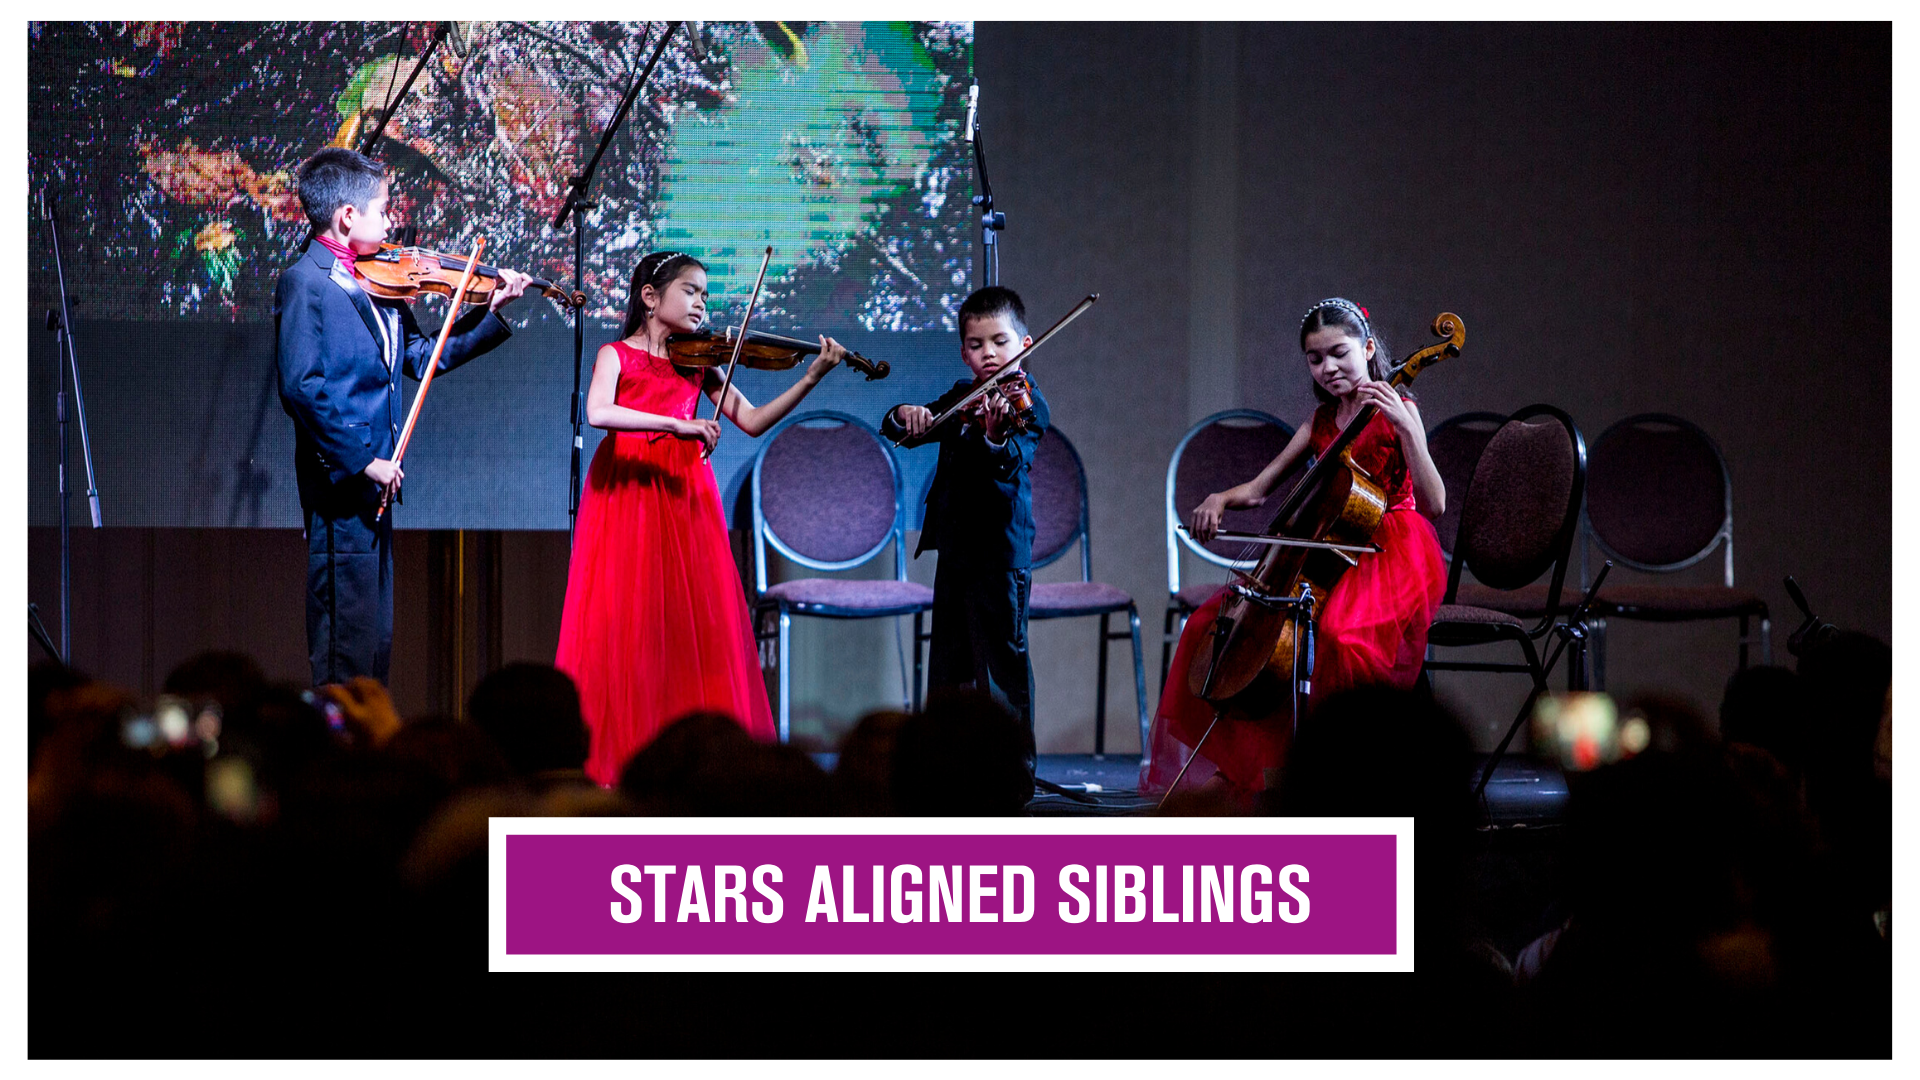 •	STARS ALIGNED SIBLINGS – EE.UU